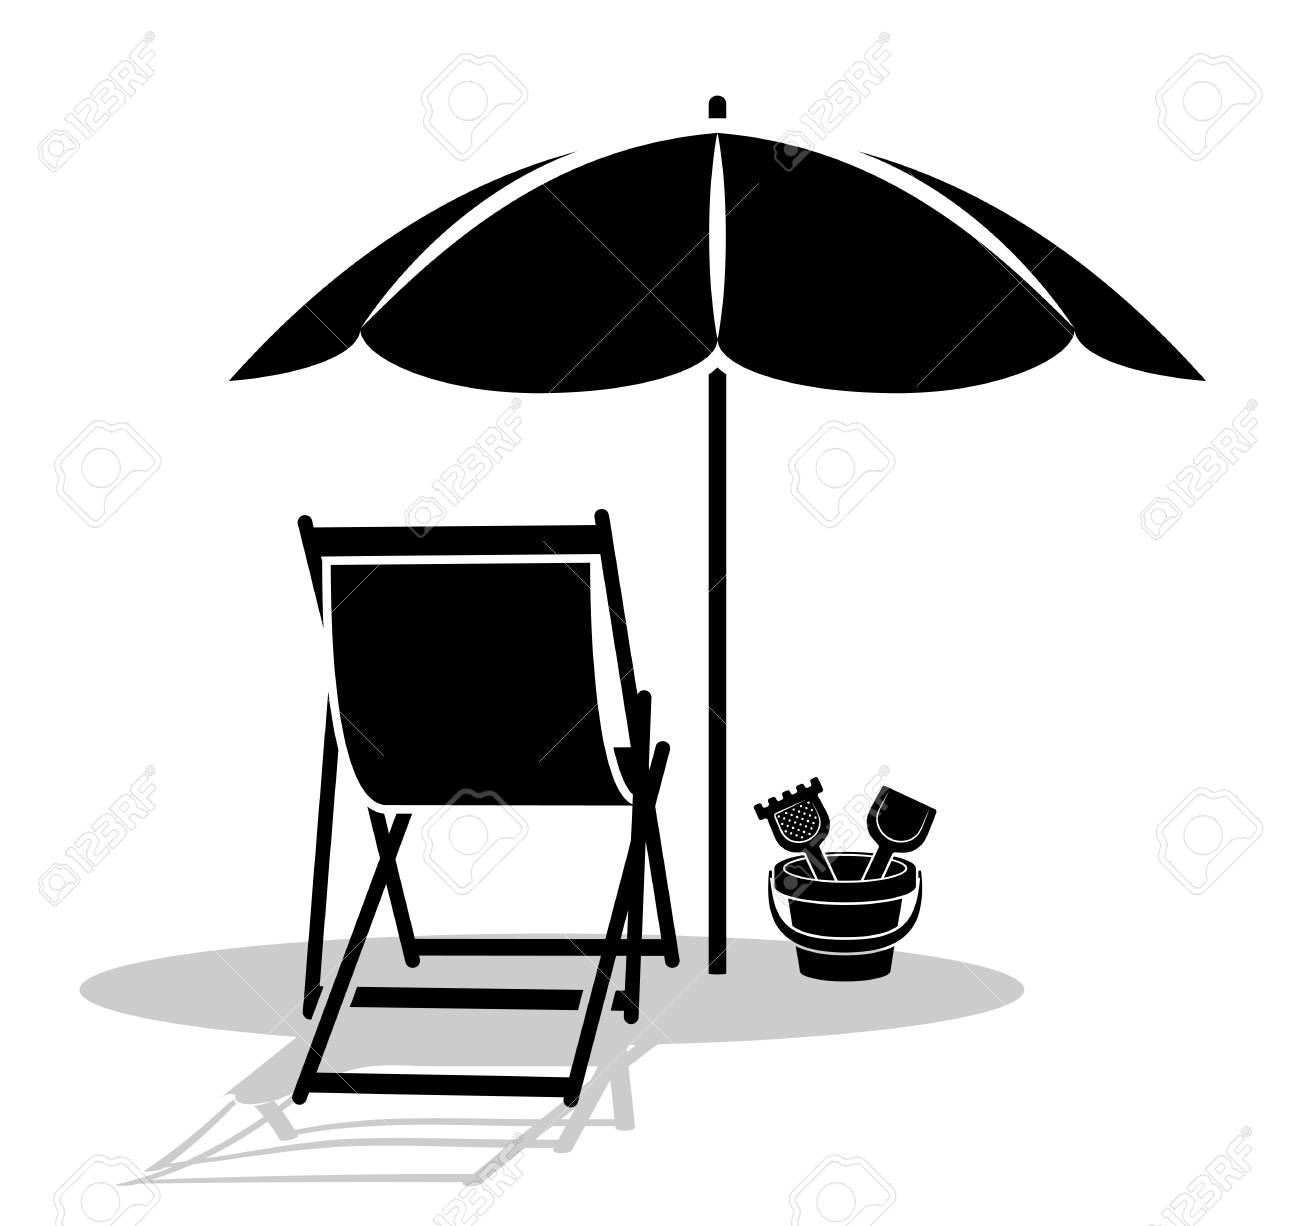 Magnificent A Vector Deck Chair And Sand Bucket Under Beach Umbrella Isolated Gmtry Best Dining Table And Chair Ideas Images Gmtryco